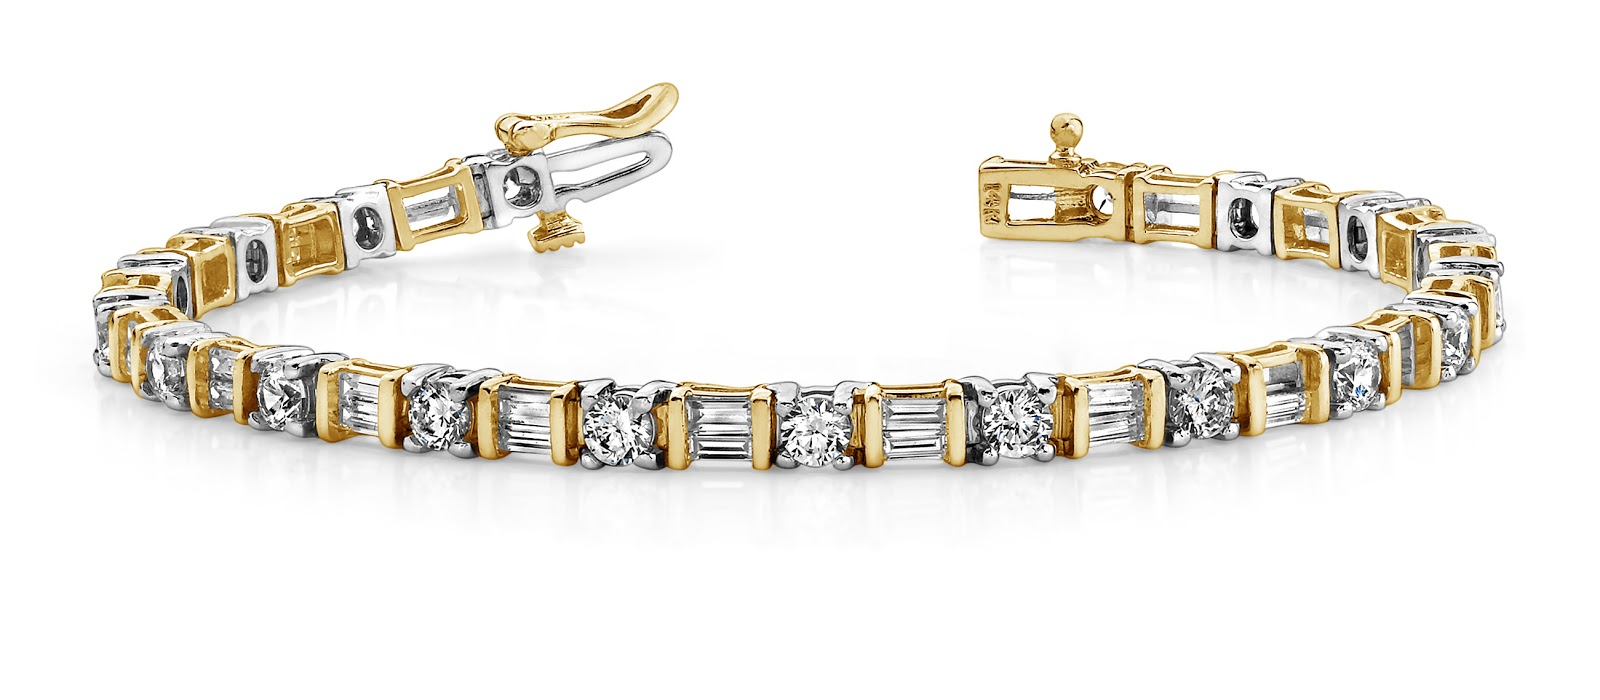 Round and Baguette Diamond Bracelet from Anjolee Jewelry